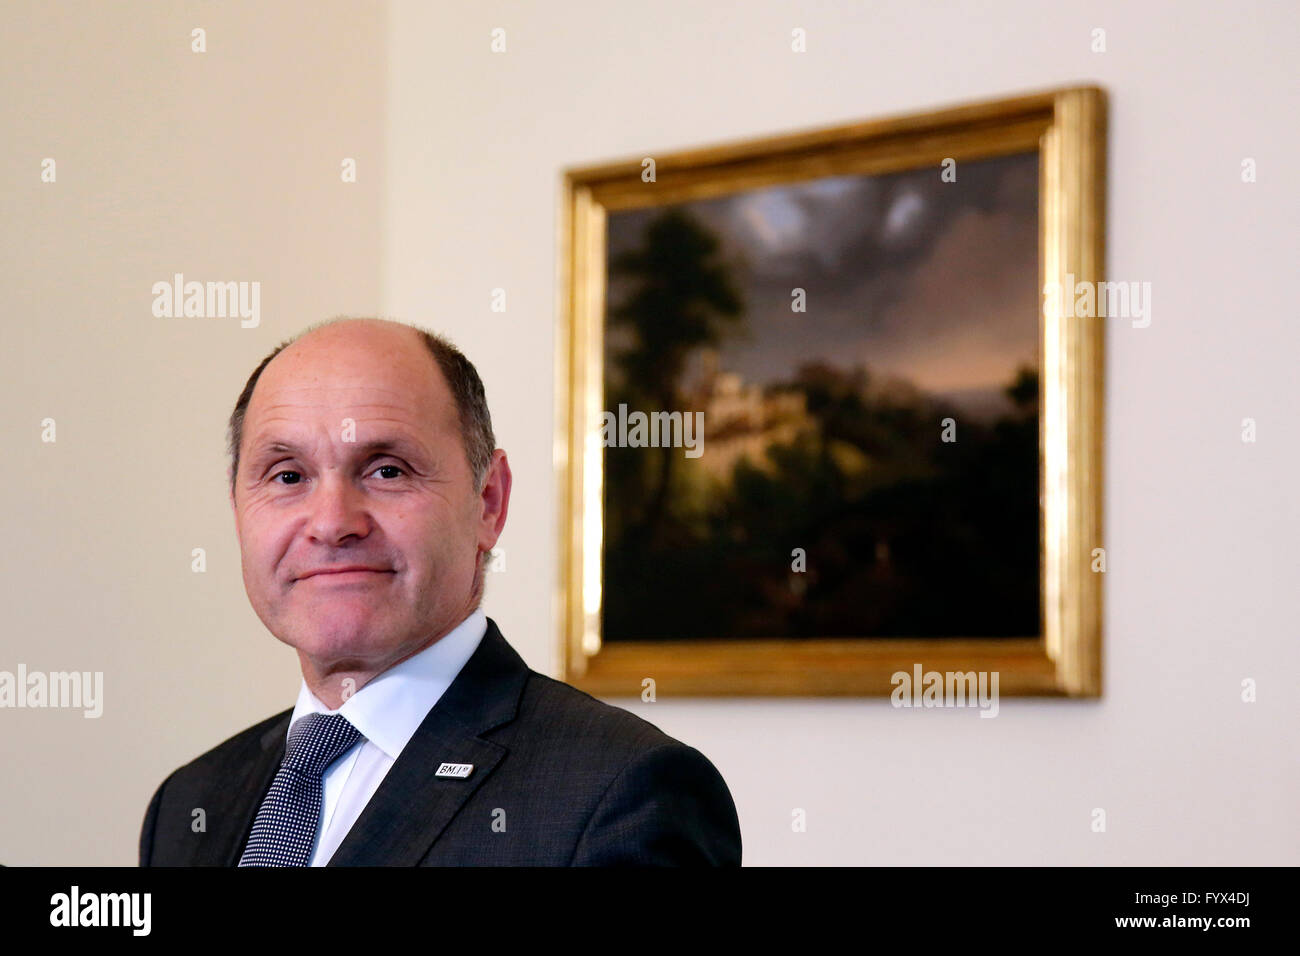 Volfgang Sobotka Rome 27th April 2016. Austrian Embassy. Press conference of the Minister of Interior of Austria - Stock Image